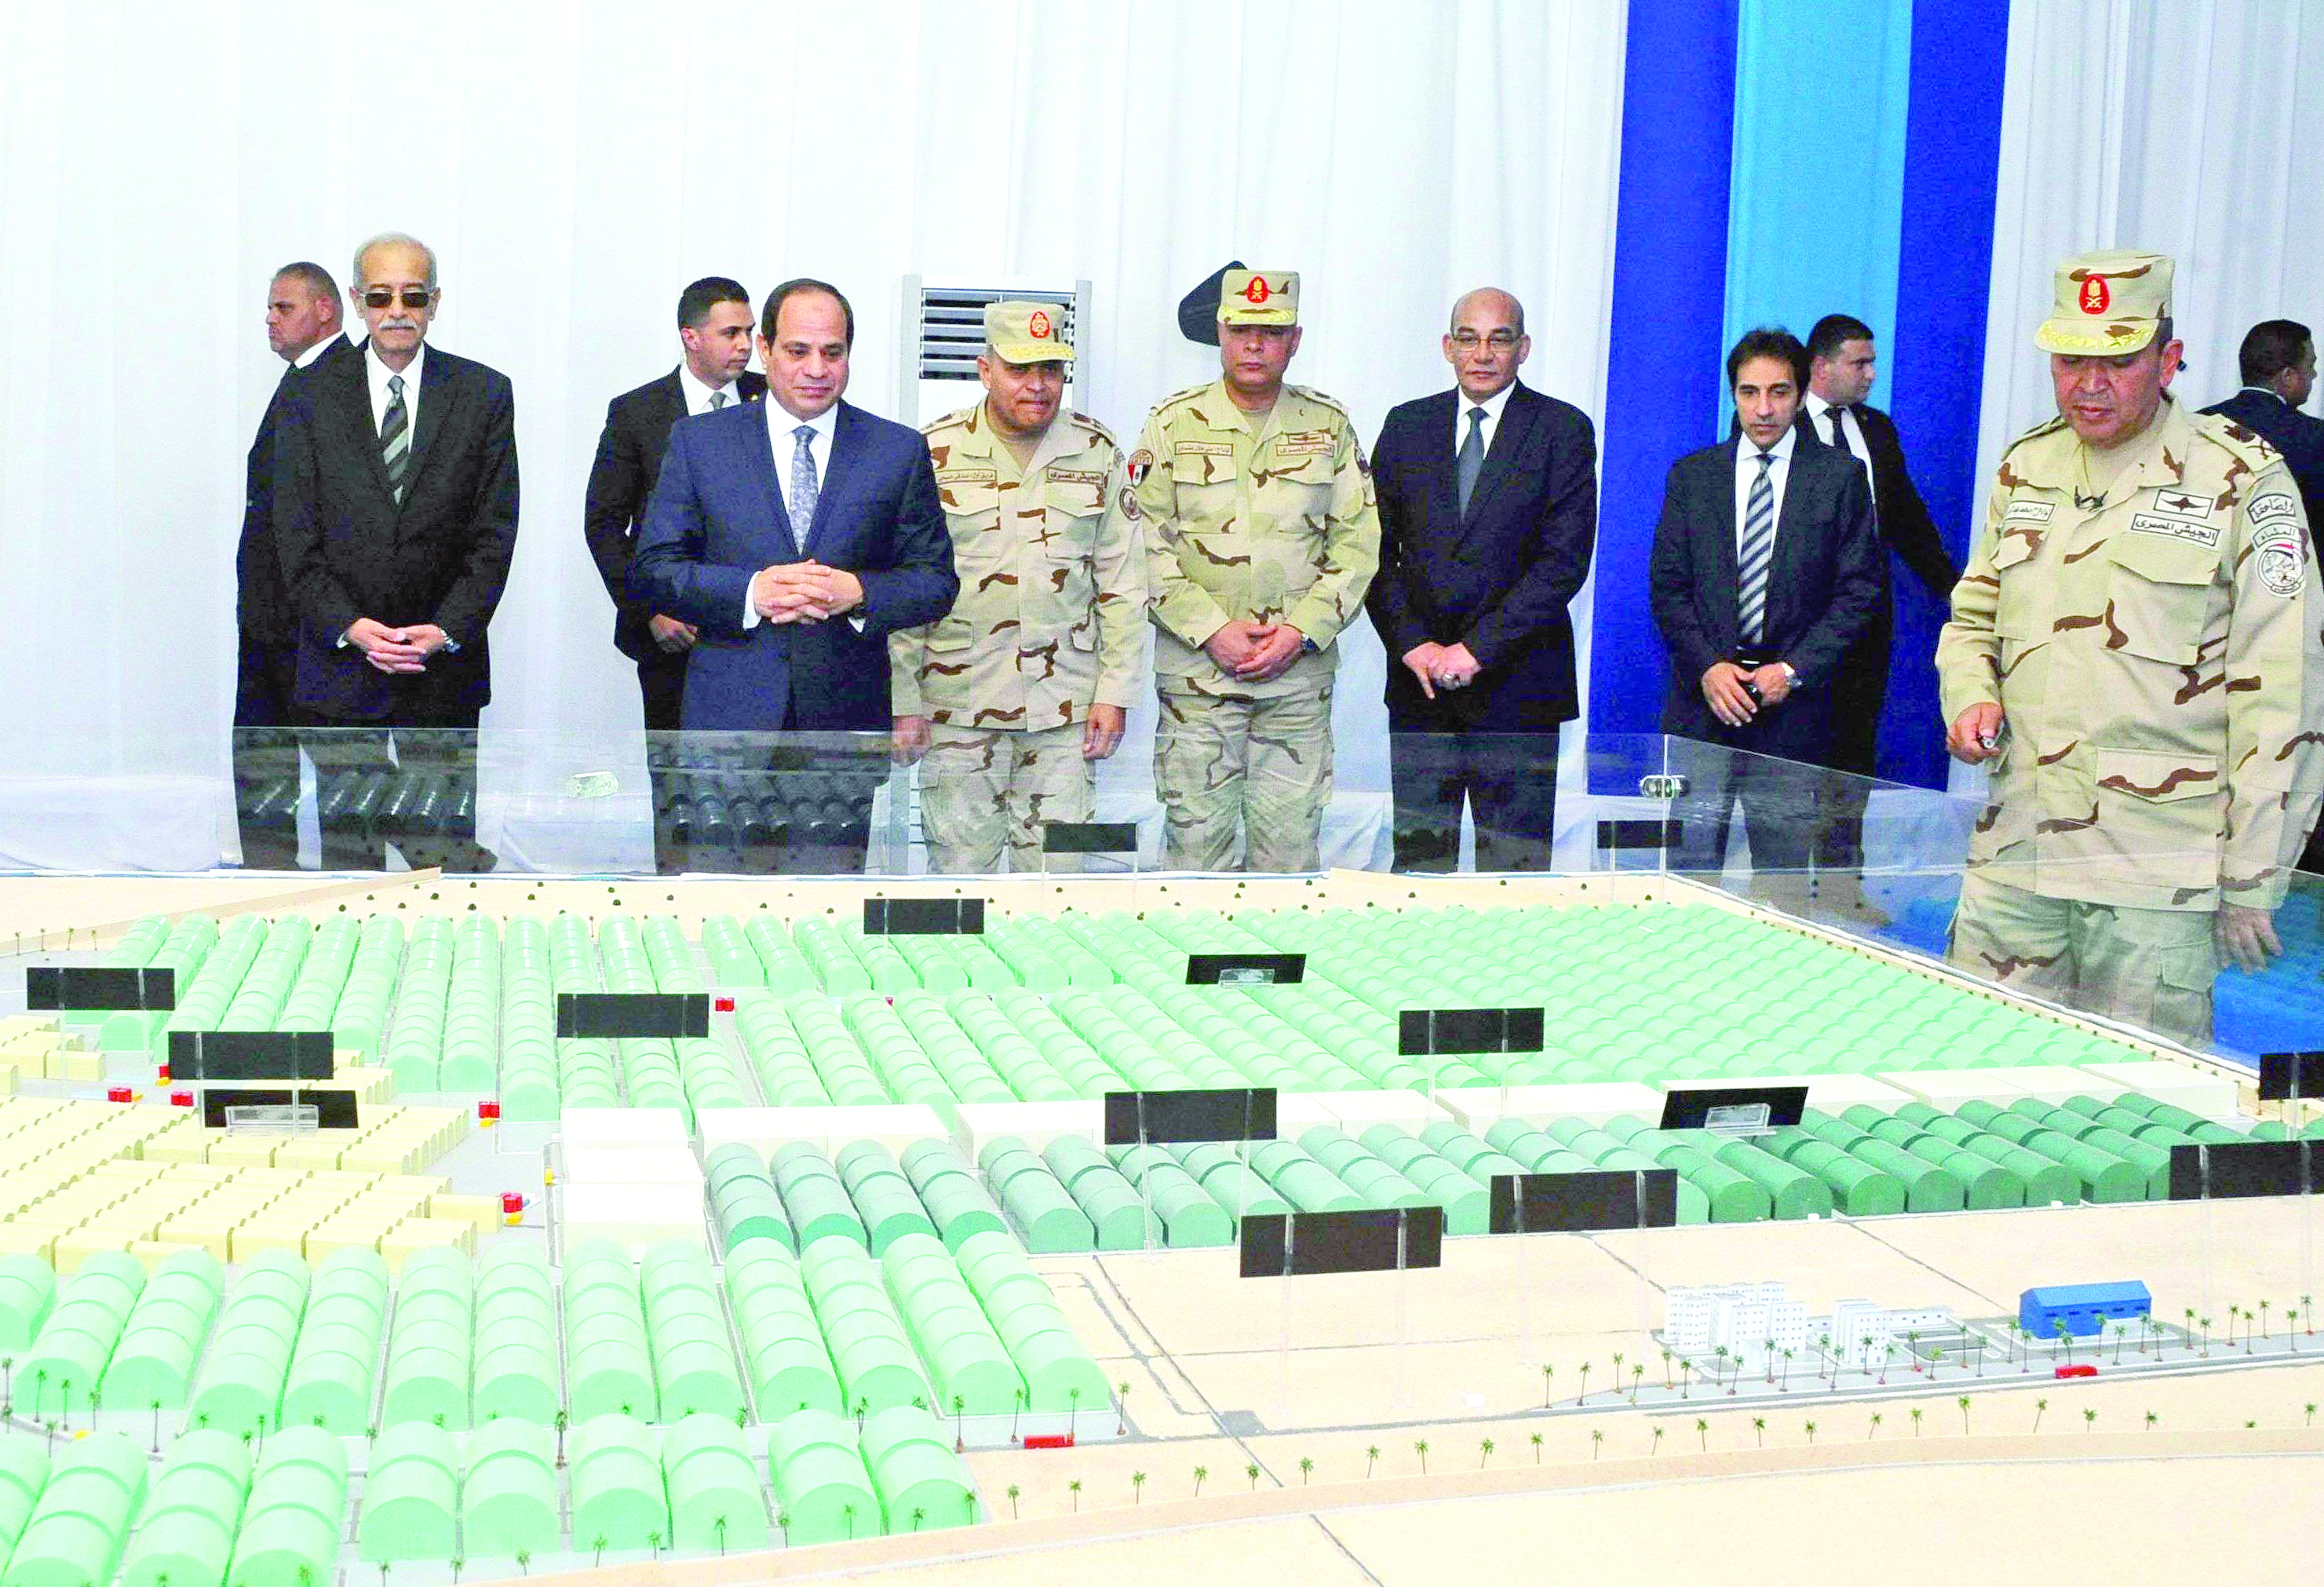 Egyptian President Abdel Fattah al-Sisi (2nd-L) looks at model diagrams of greenhouses during the inauguration of an agricultural project at Mohamed Naguib military base in al-Hammam region, last February. (Egyptian Presidency)